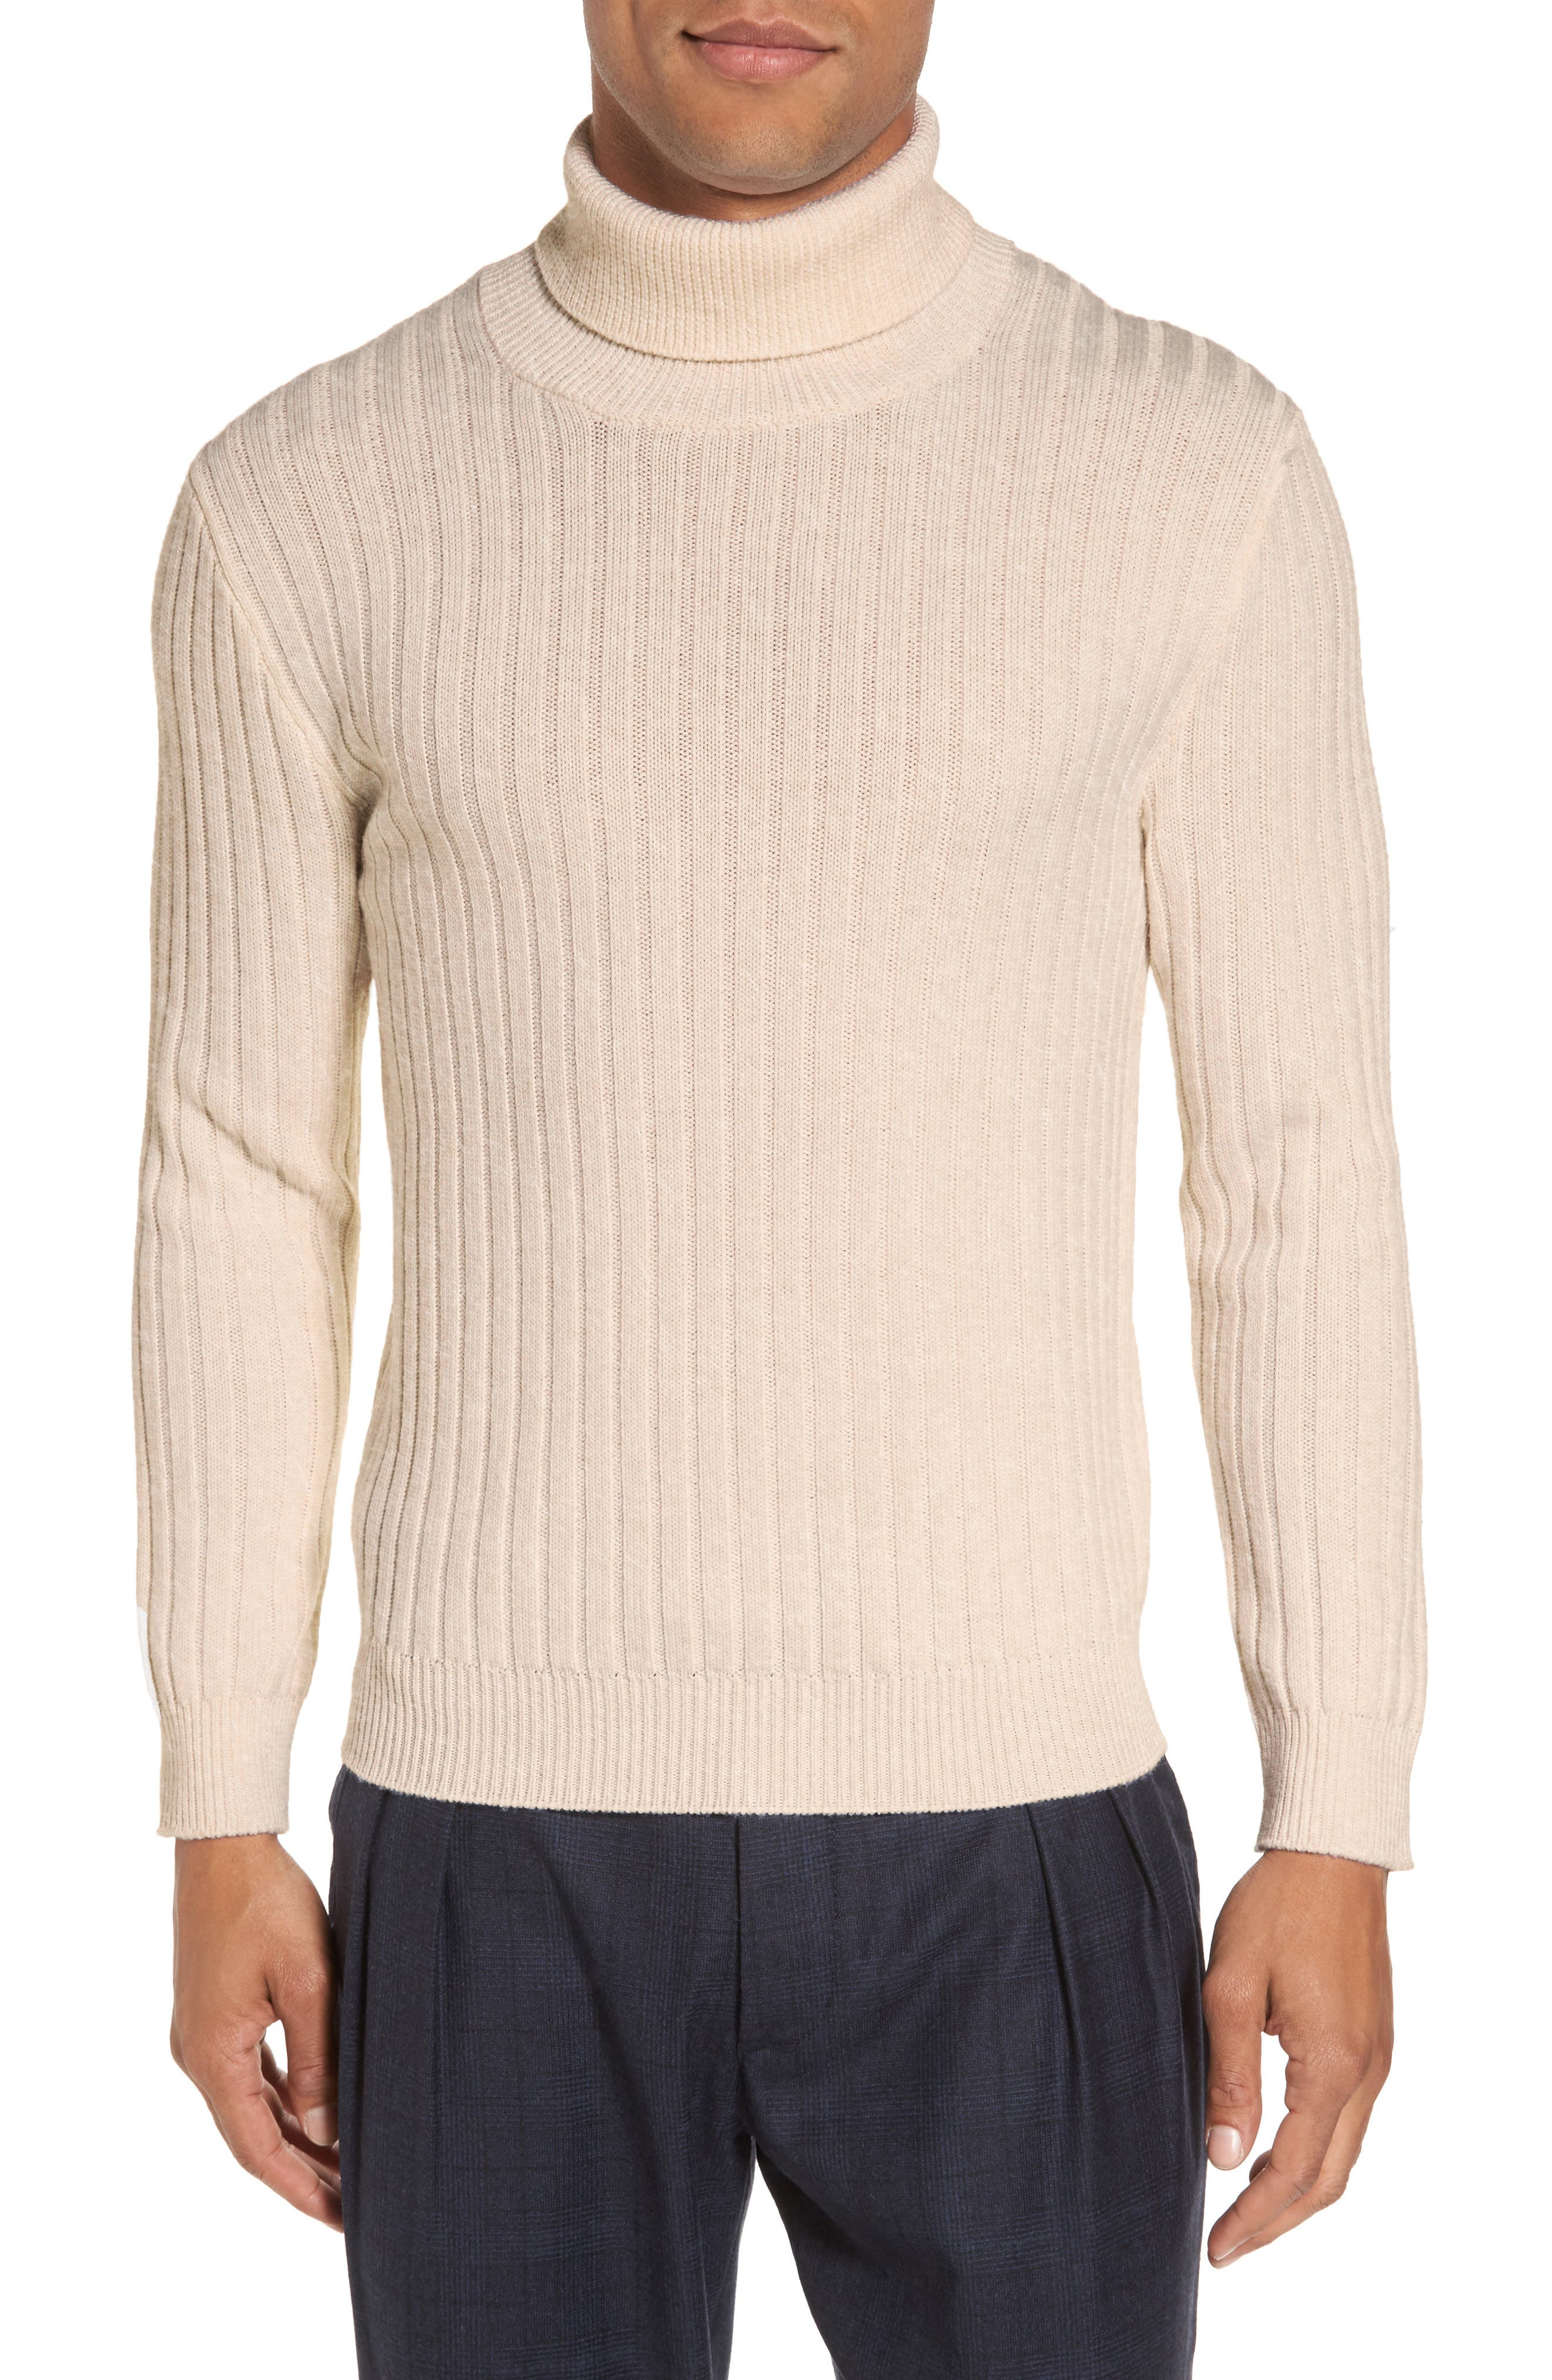 Ribbed Turtleneck Wool Sweater,                         Main,                         color, 250